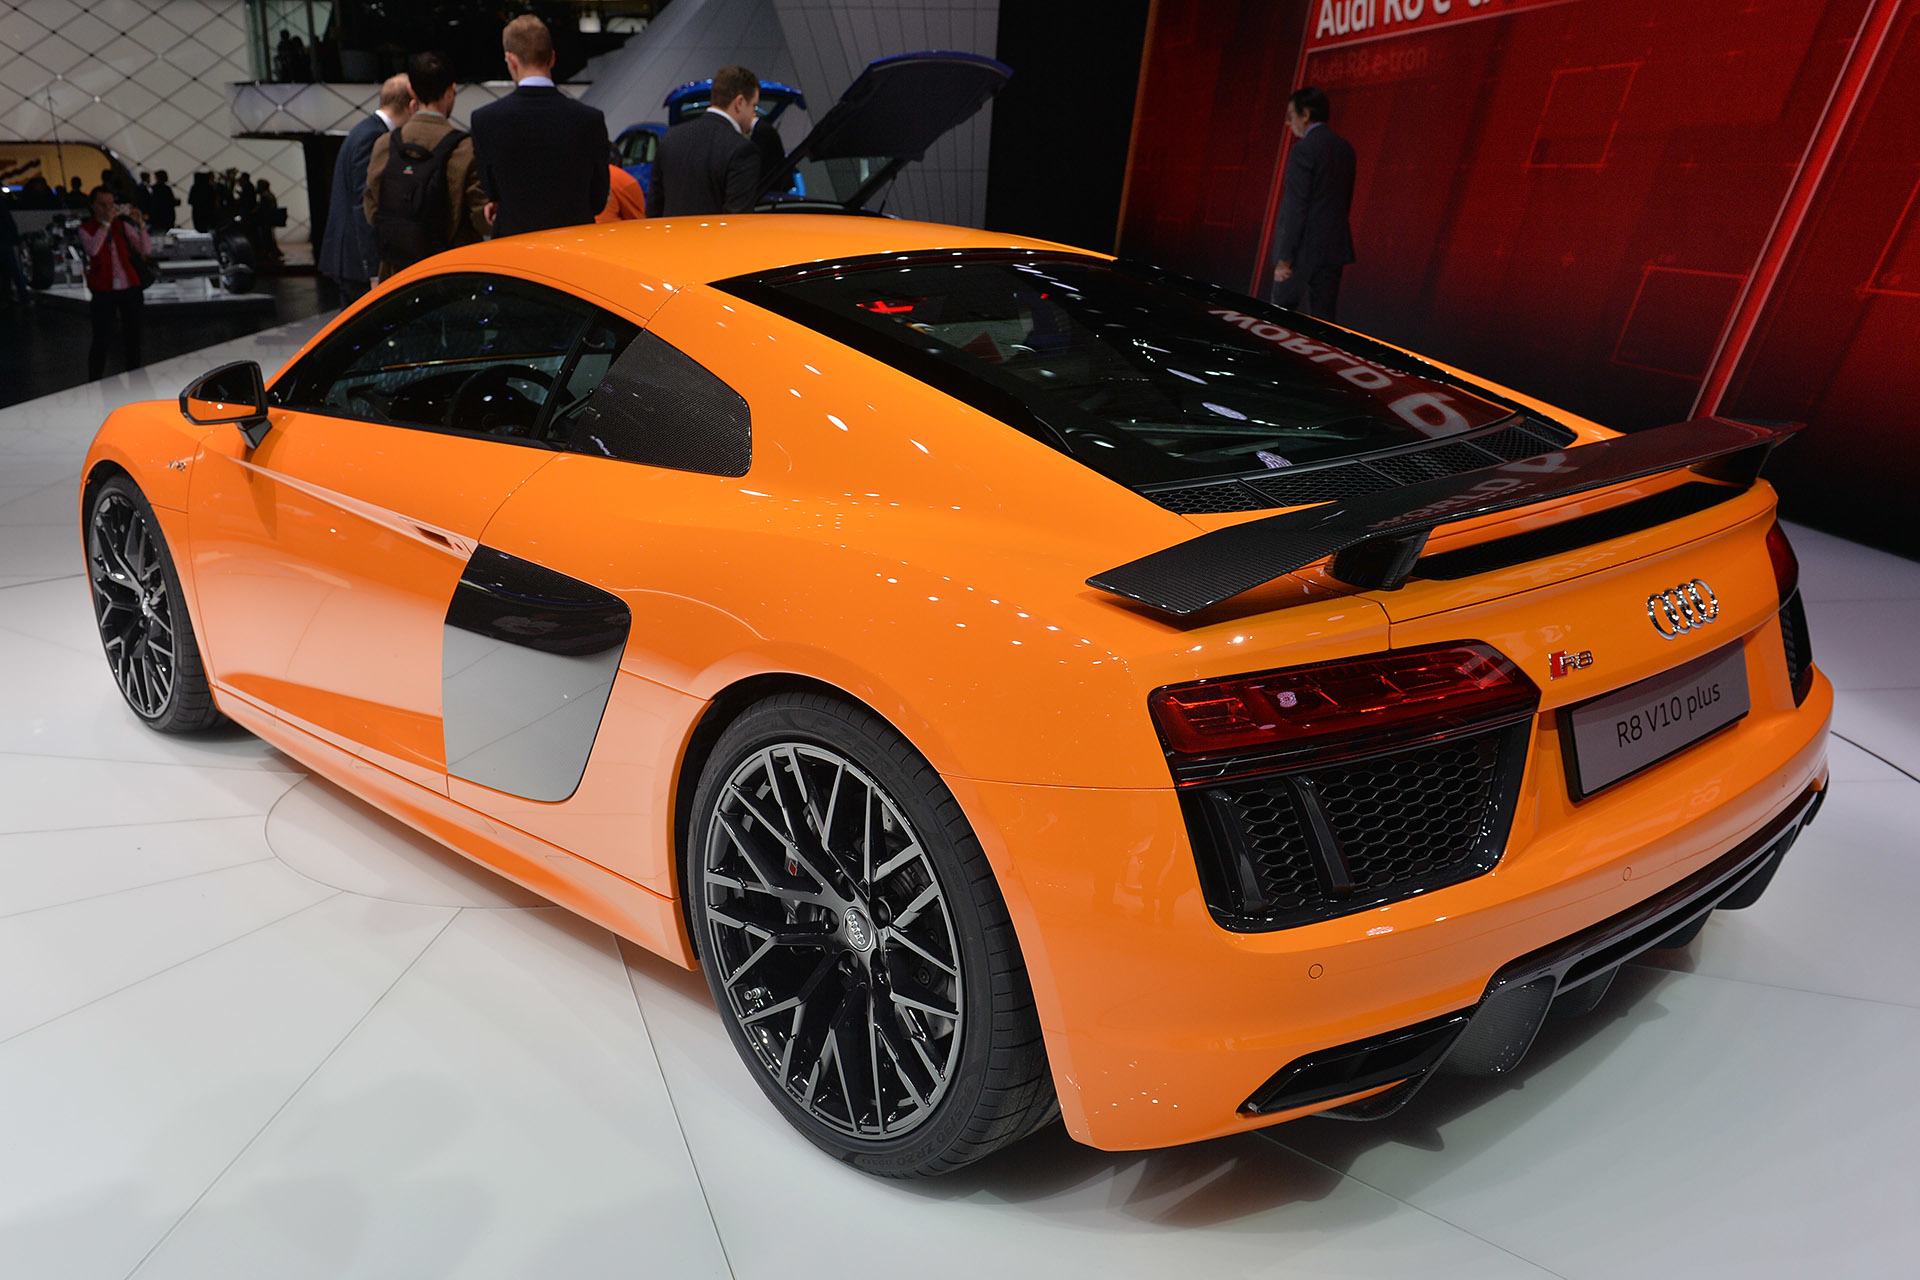 2016 audi r8 geneva 2015 photo gallery autoblog. Black Bedroom Furniture Sets. Home Design Ideas